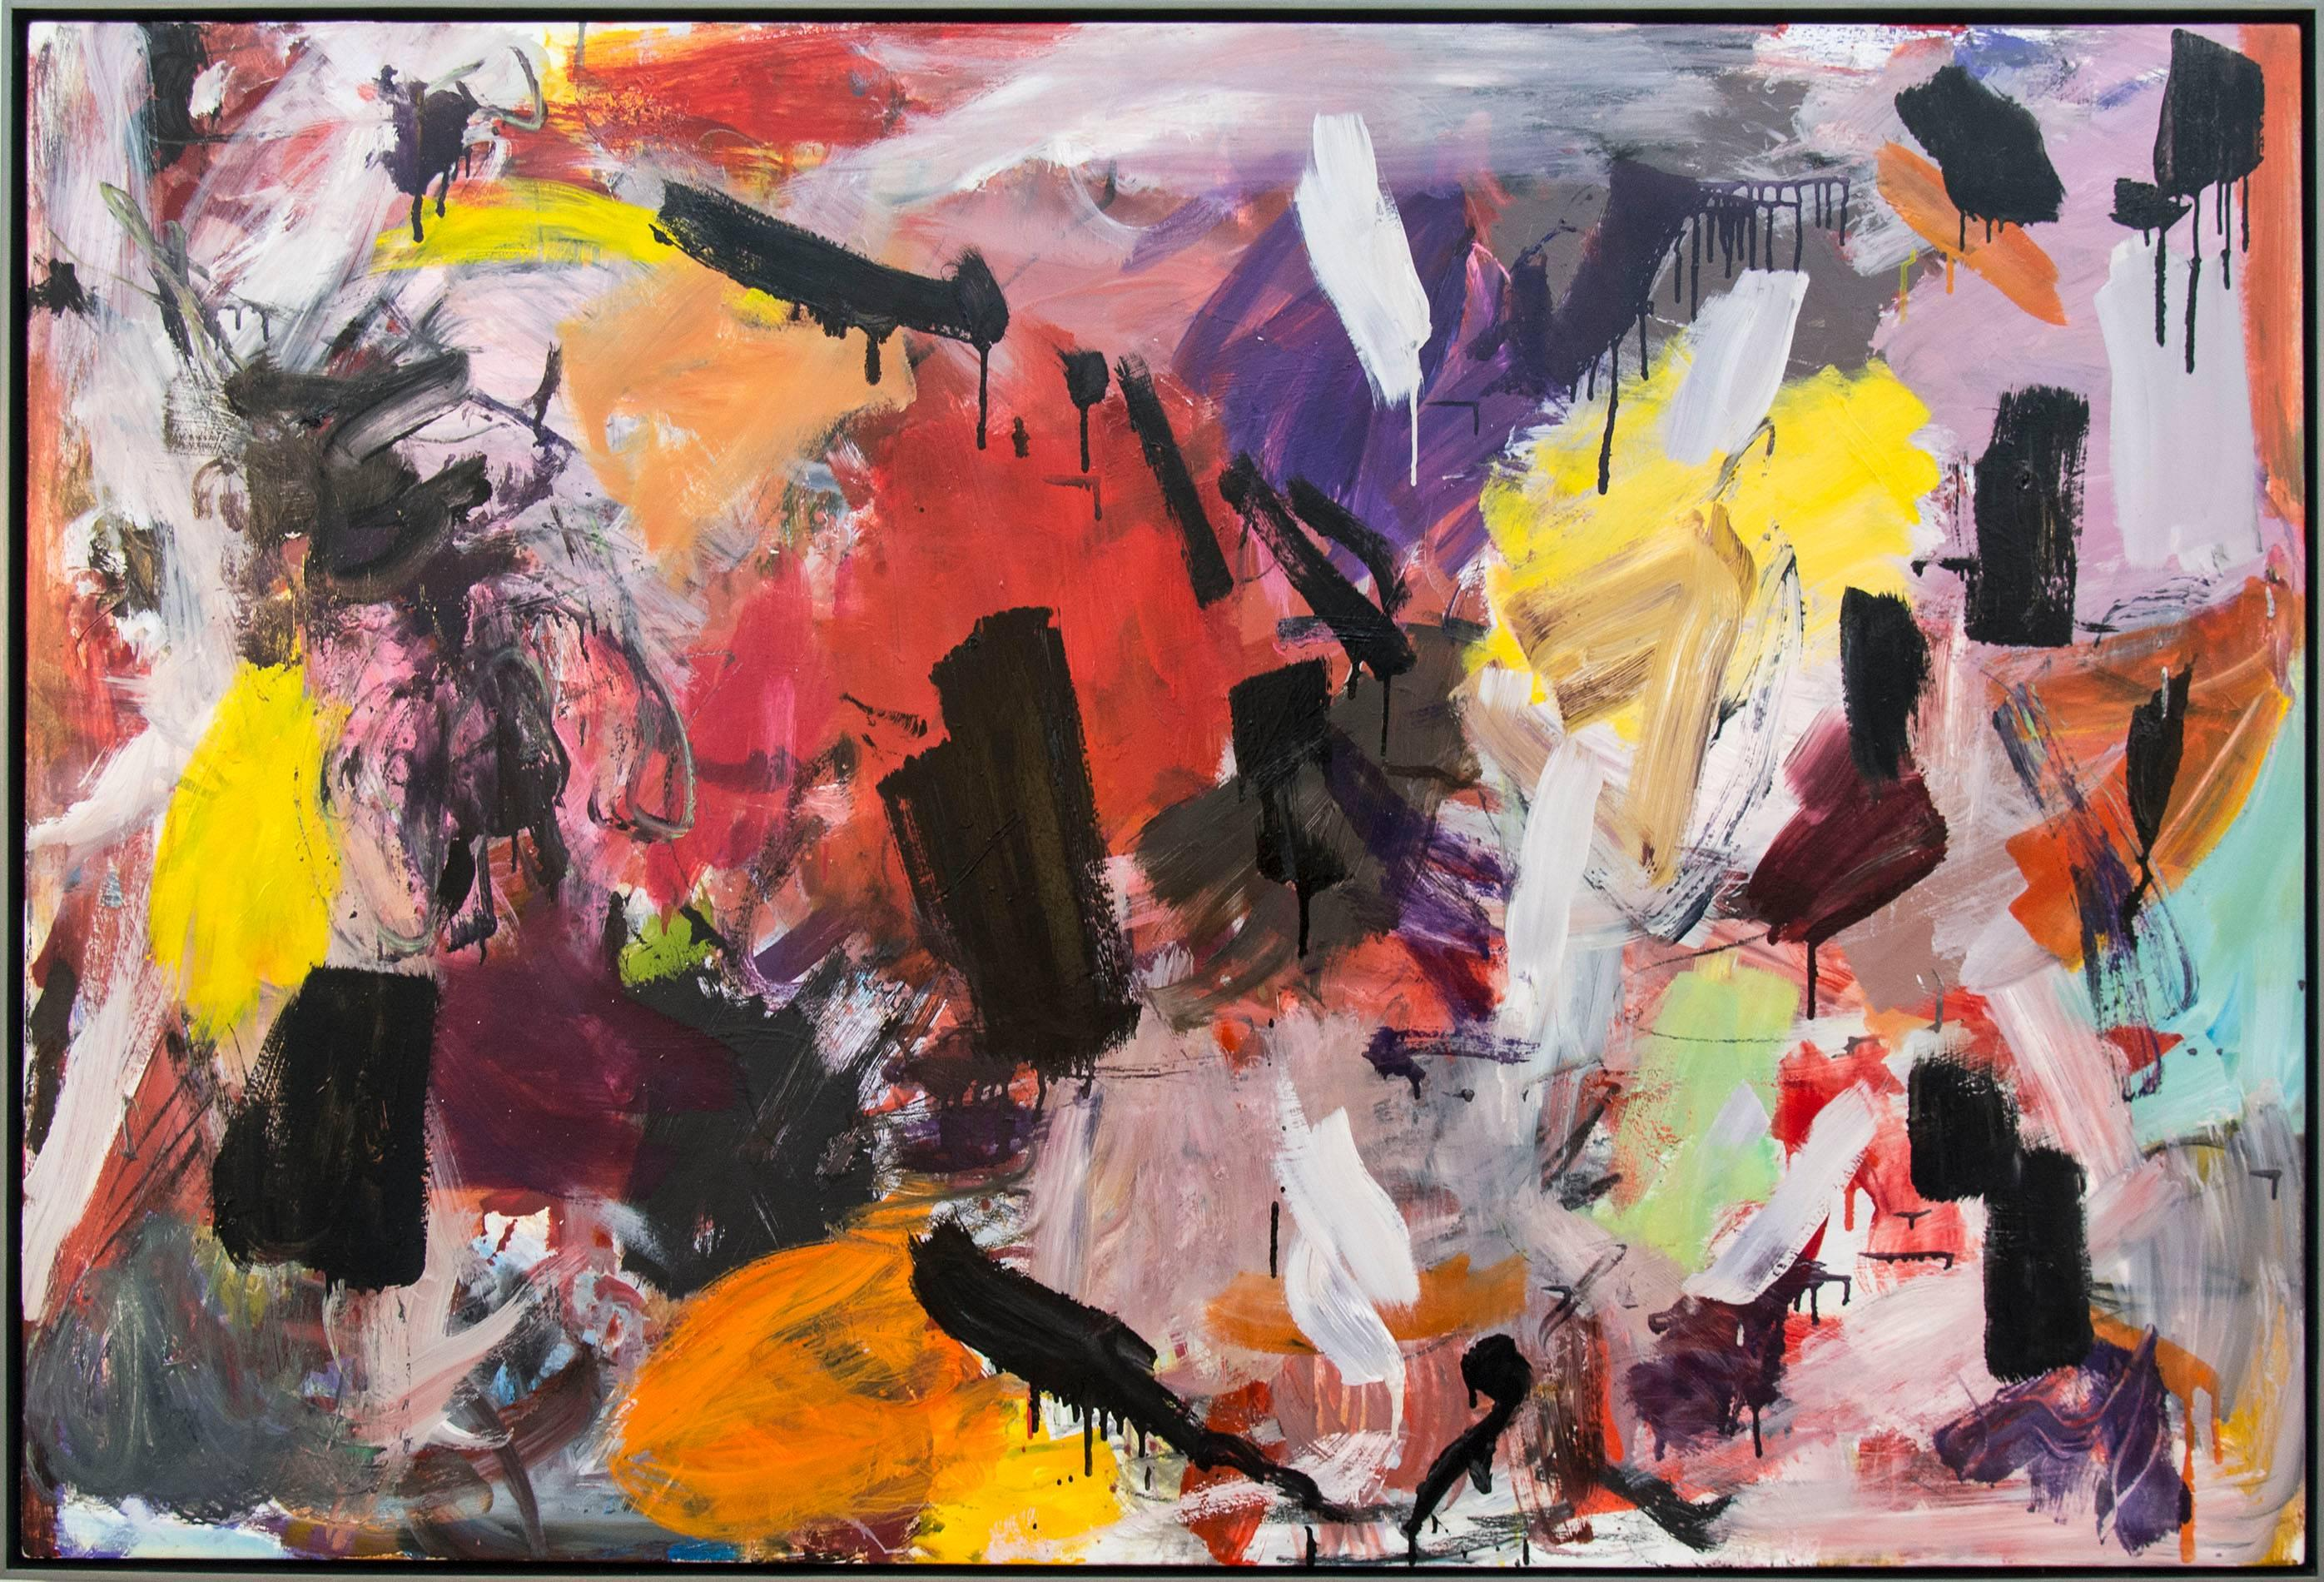 Ouvert No 18 - large, vibrant, colourful, gestural abstract, oil on canvas